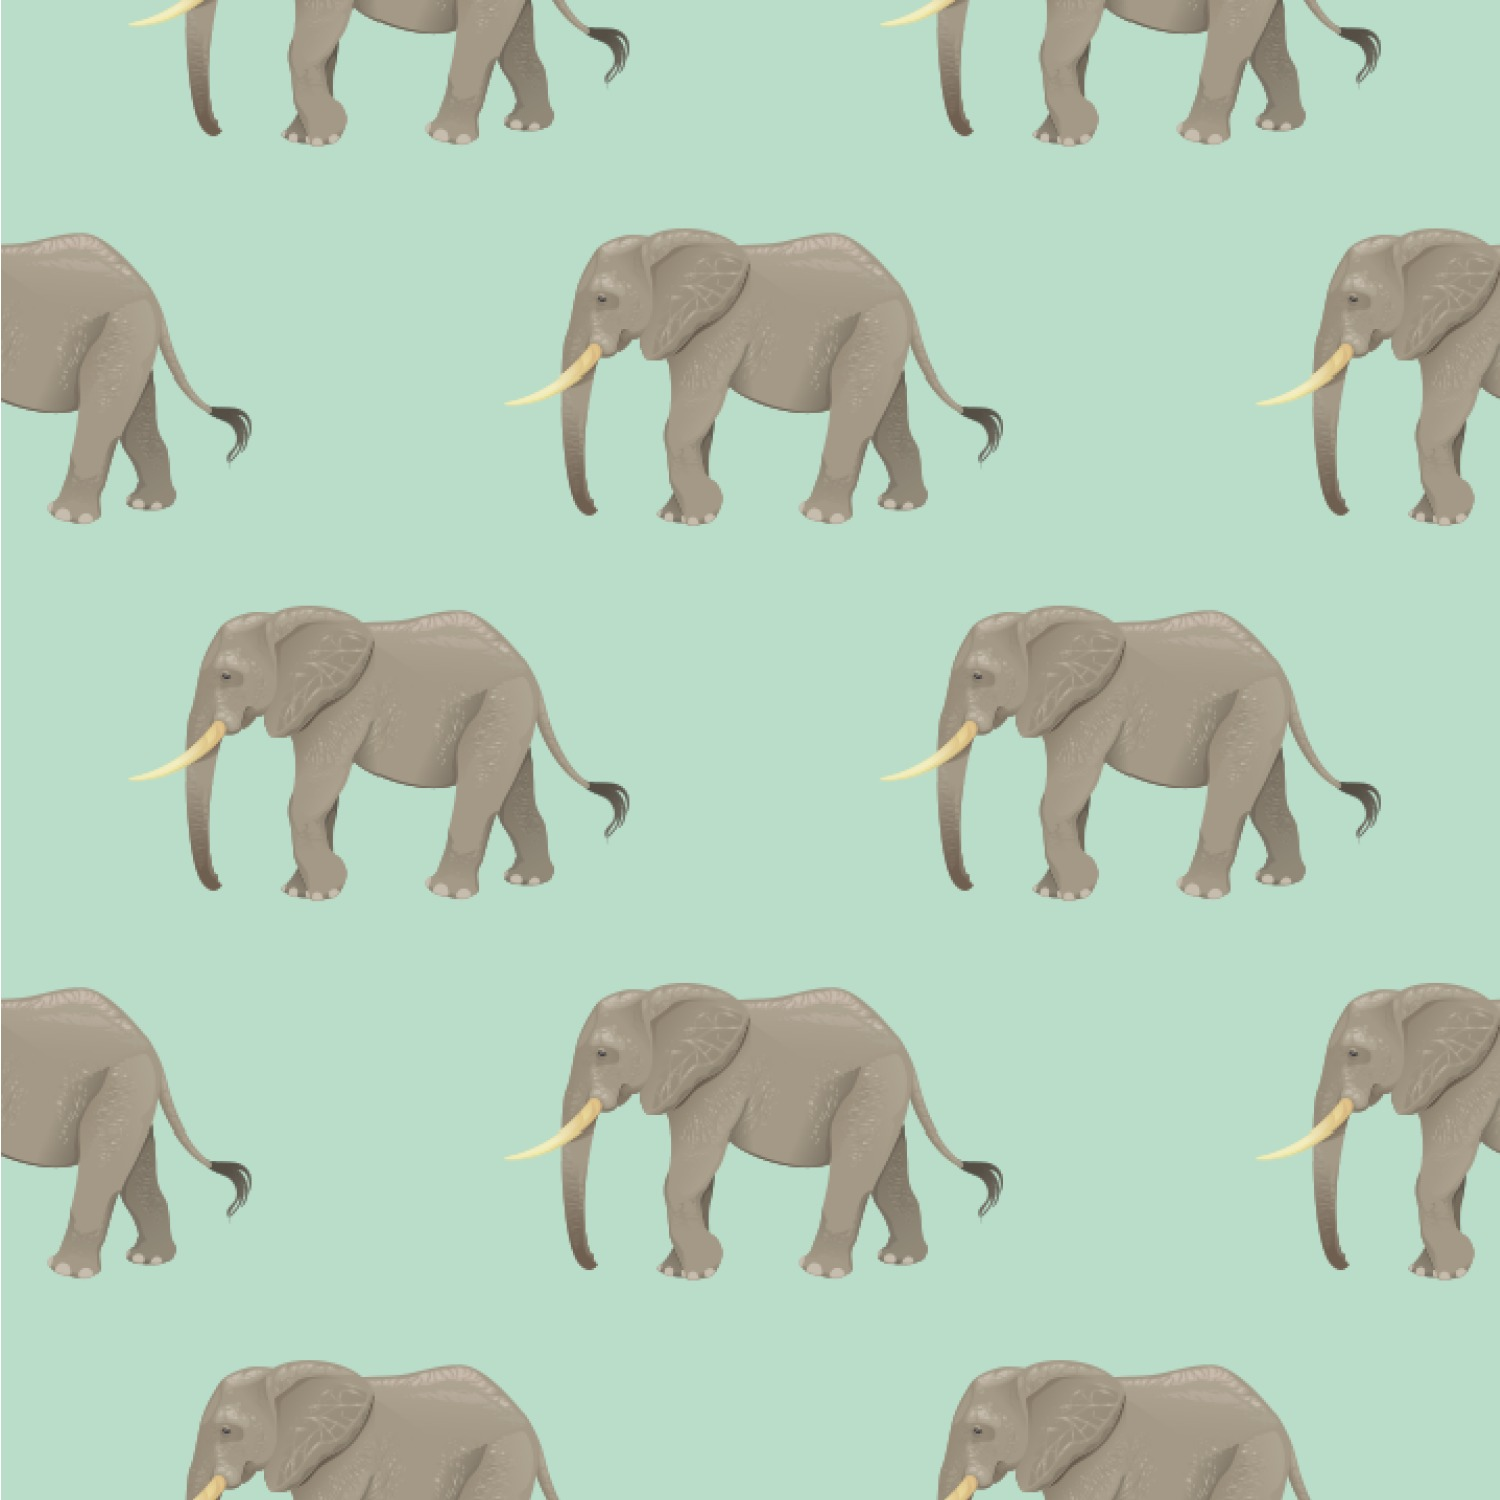 Elephant Wallpaper Surface Covering